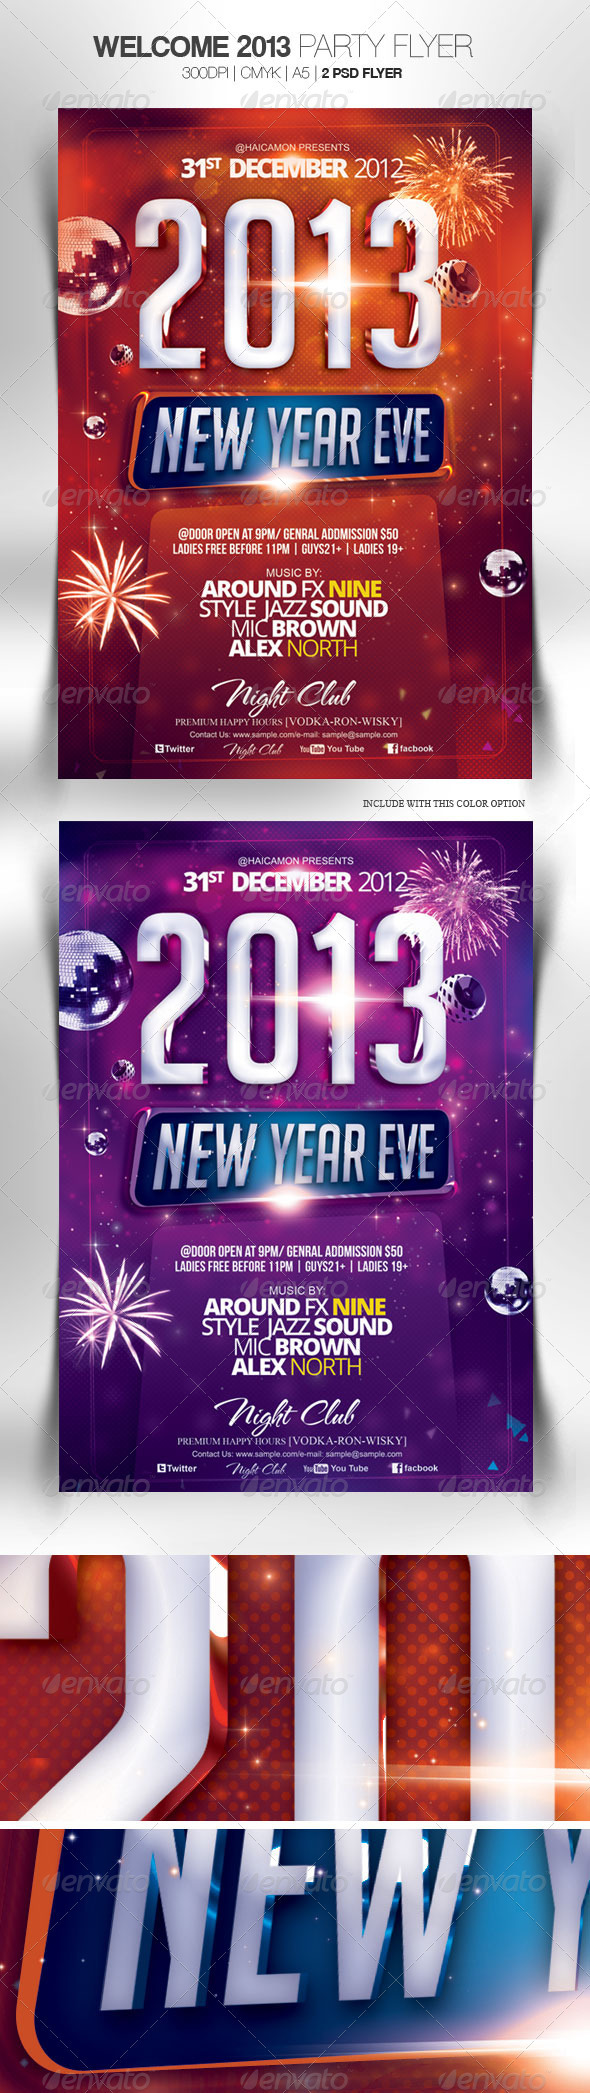 Welcome 2013 Party Flyer - Clubs & Parties Events